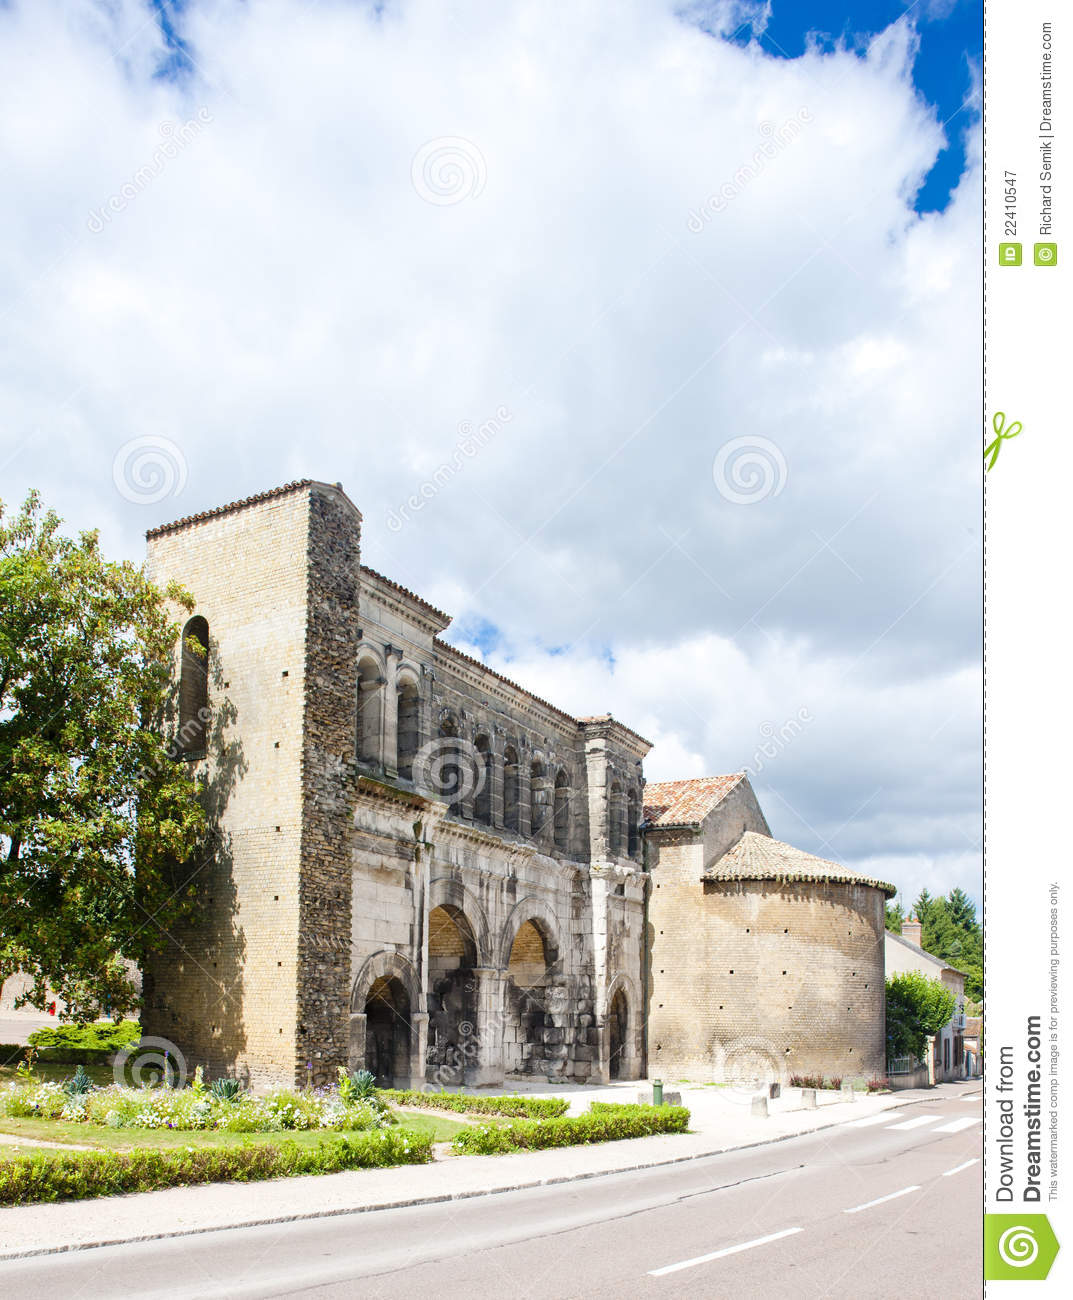 Autun France  city pictures gallery : Autun, France Royalty Free Stock Photography Image: 22410547